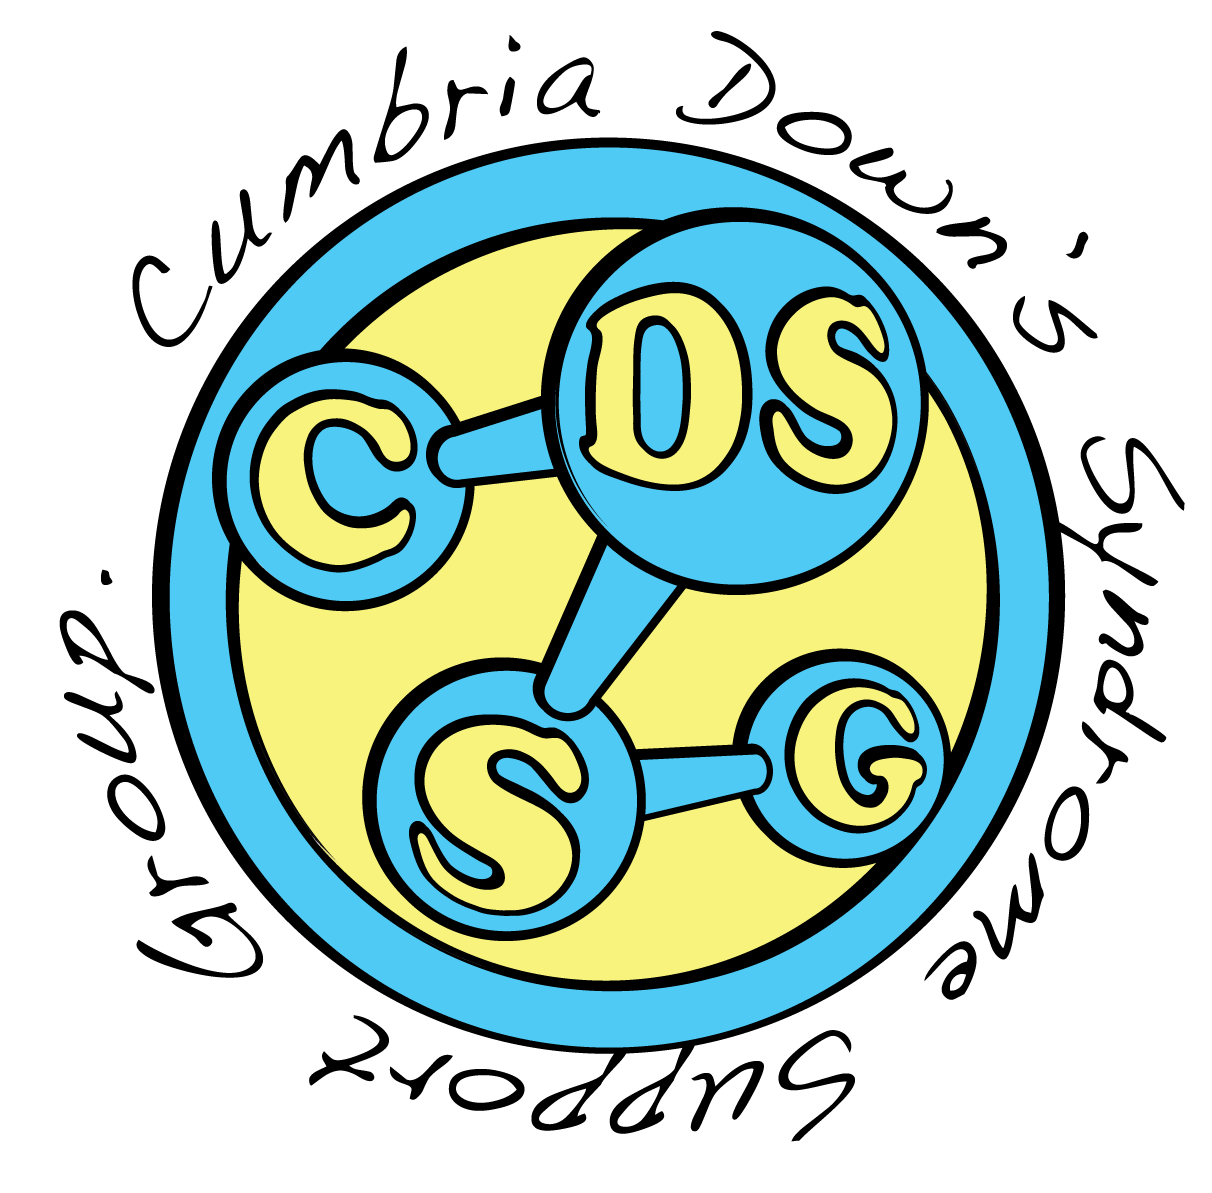 Cumbria Down's Syndrome Support Group logo